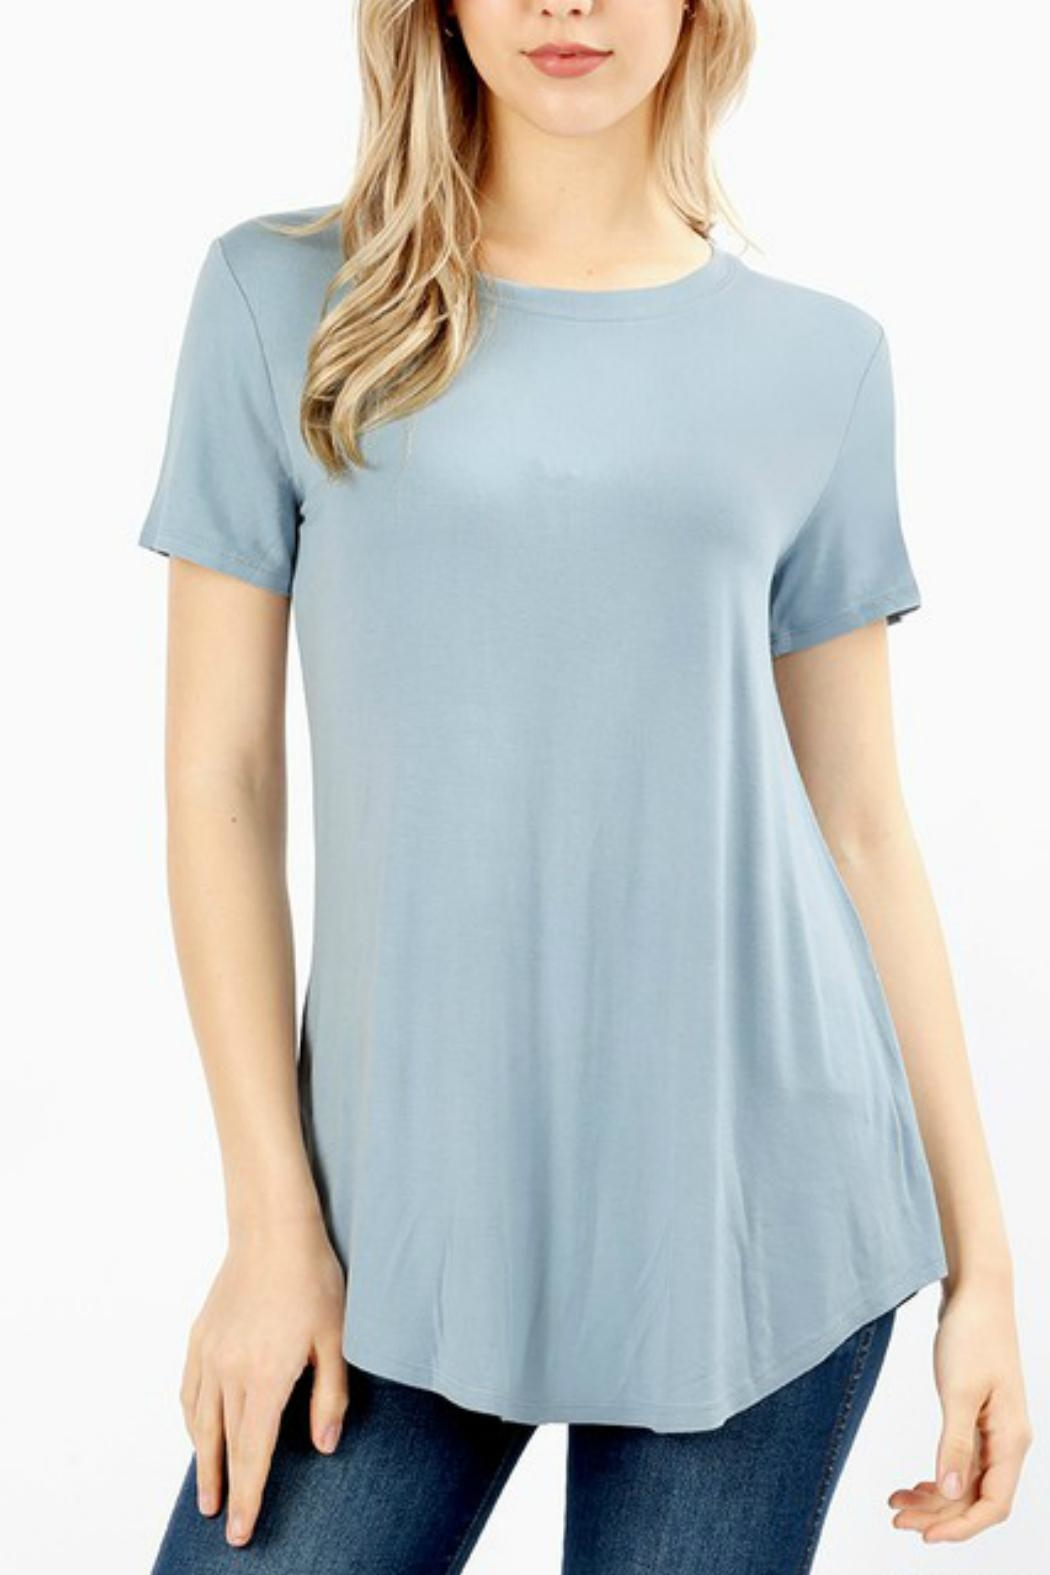 Zenana Outfitters Short-Sleeve Basic Tee - Front Cropped Image